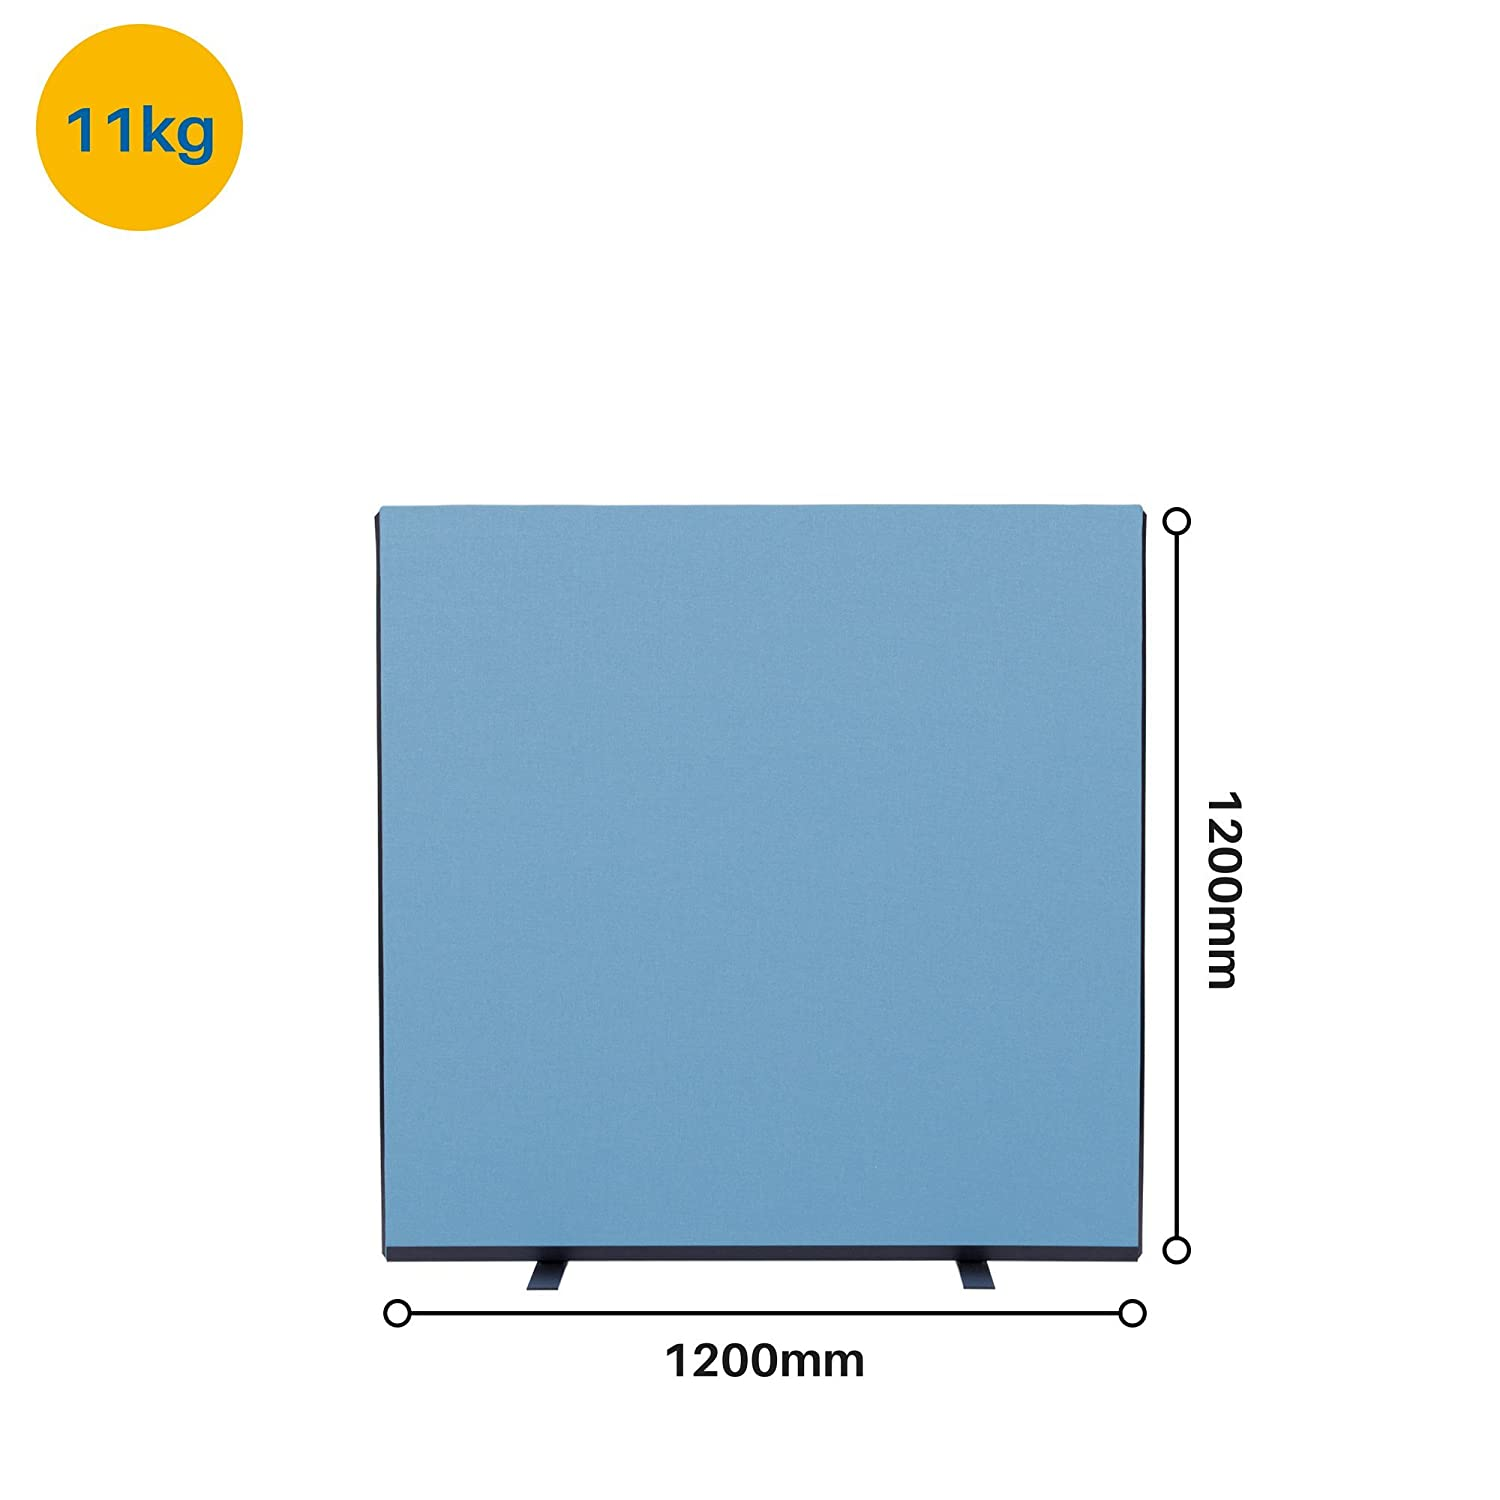 Panelwarehouse 1200mm Wide Woolmix Office Partition Screen 3 Heights /& 11 Colours Beige, 1200mm W x 1200mm H